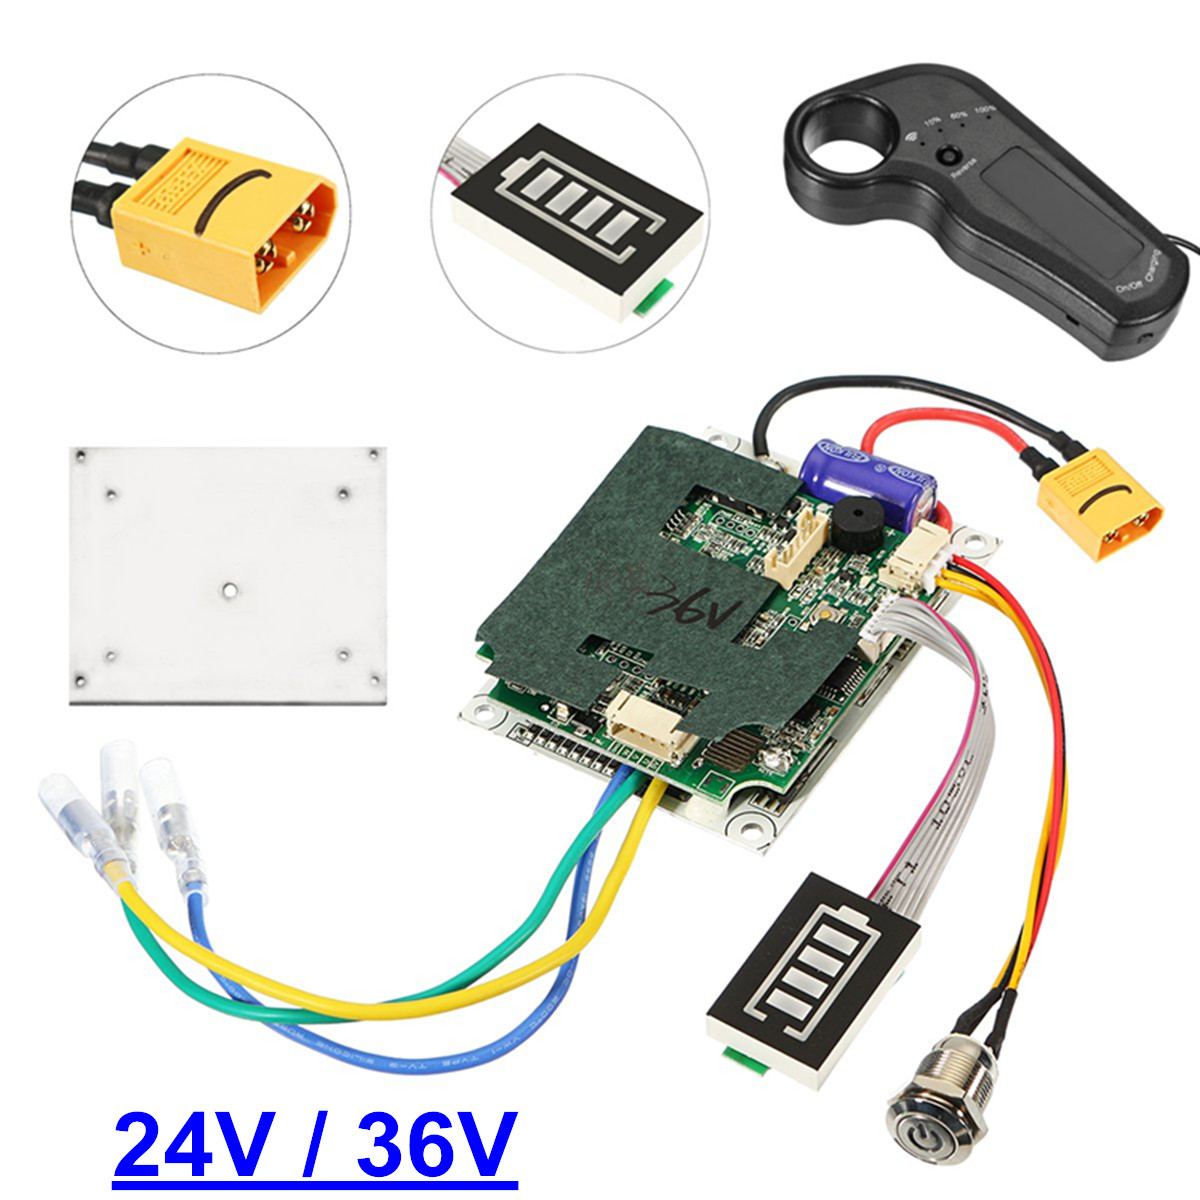 24/36V Single Belt Motor Electric Skateboard Controller Longboard ESC Substitute Parts Scooter Mainboard Instrument Tools bracelet